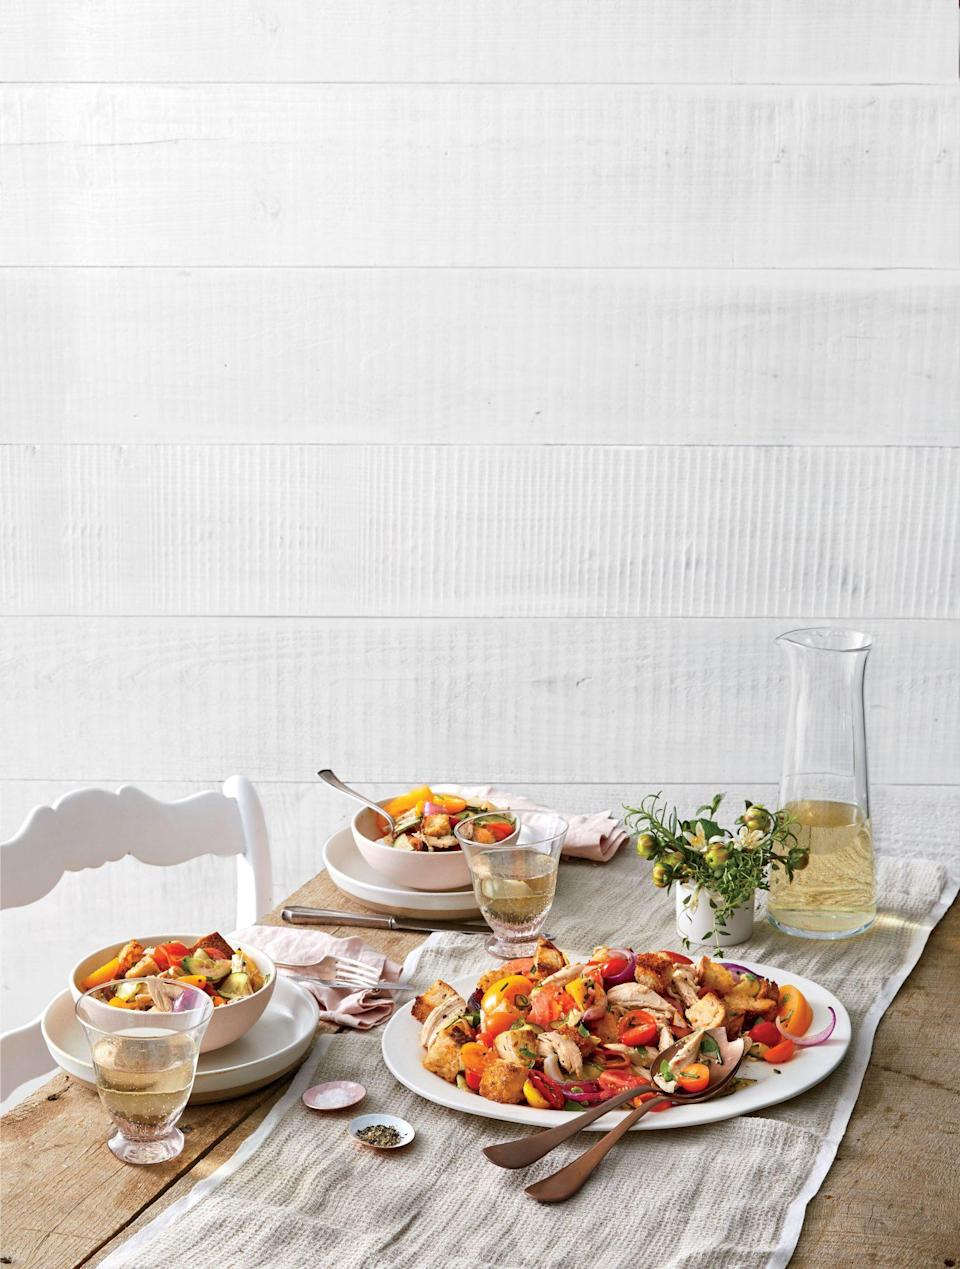 """<p><strong>Recipe: </strong><a href=""""https://www.southernliving.com/recipes/whole-grain-panzanella-recipe"""" rel=""""nofollow noopener"""" target=""""_blank"""" data-ylk=""""slk:Whole-Grain Panzanella"""" class=""""link rapid-noclick-resp""""><strong>Whole-Grain Panzanella</strong></a></p> <p>Shredded rotisserie chicken from the grocery store is an easy way to add extra protein to this juicy tomato panzanella.</p>"""